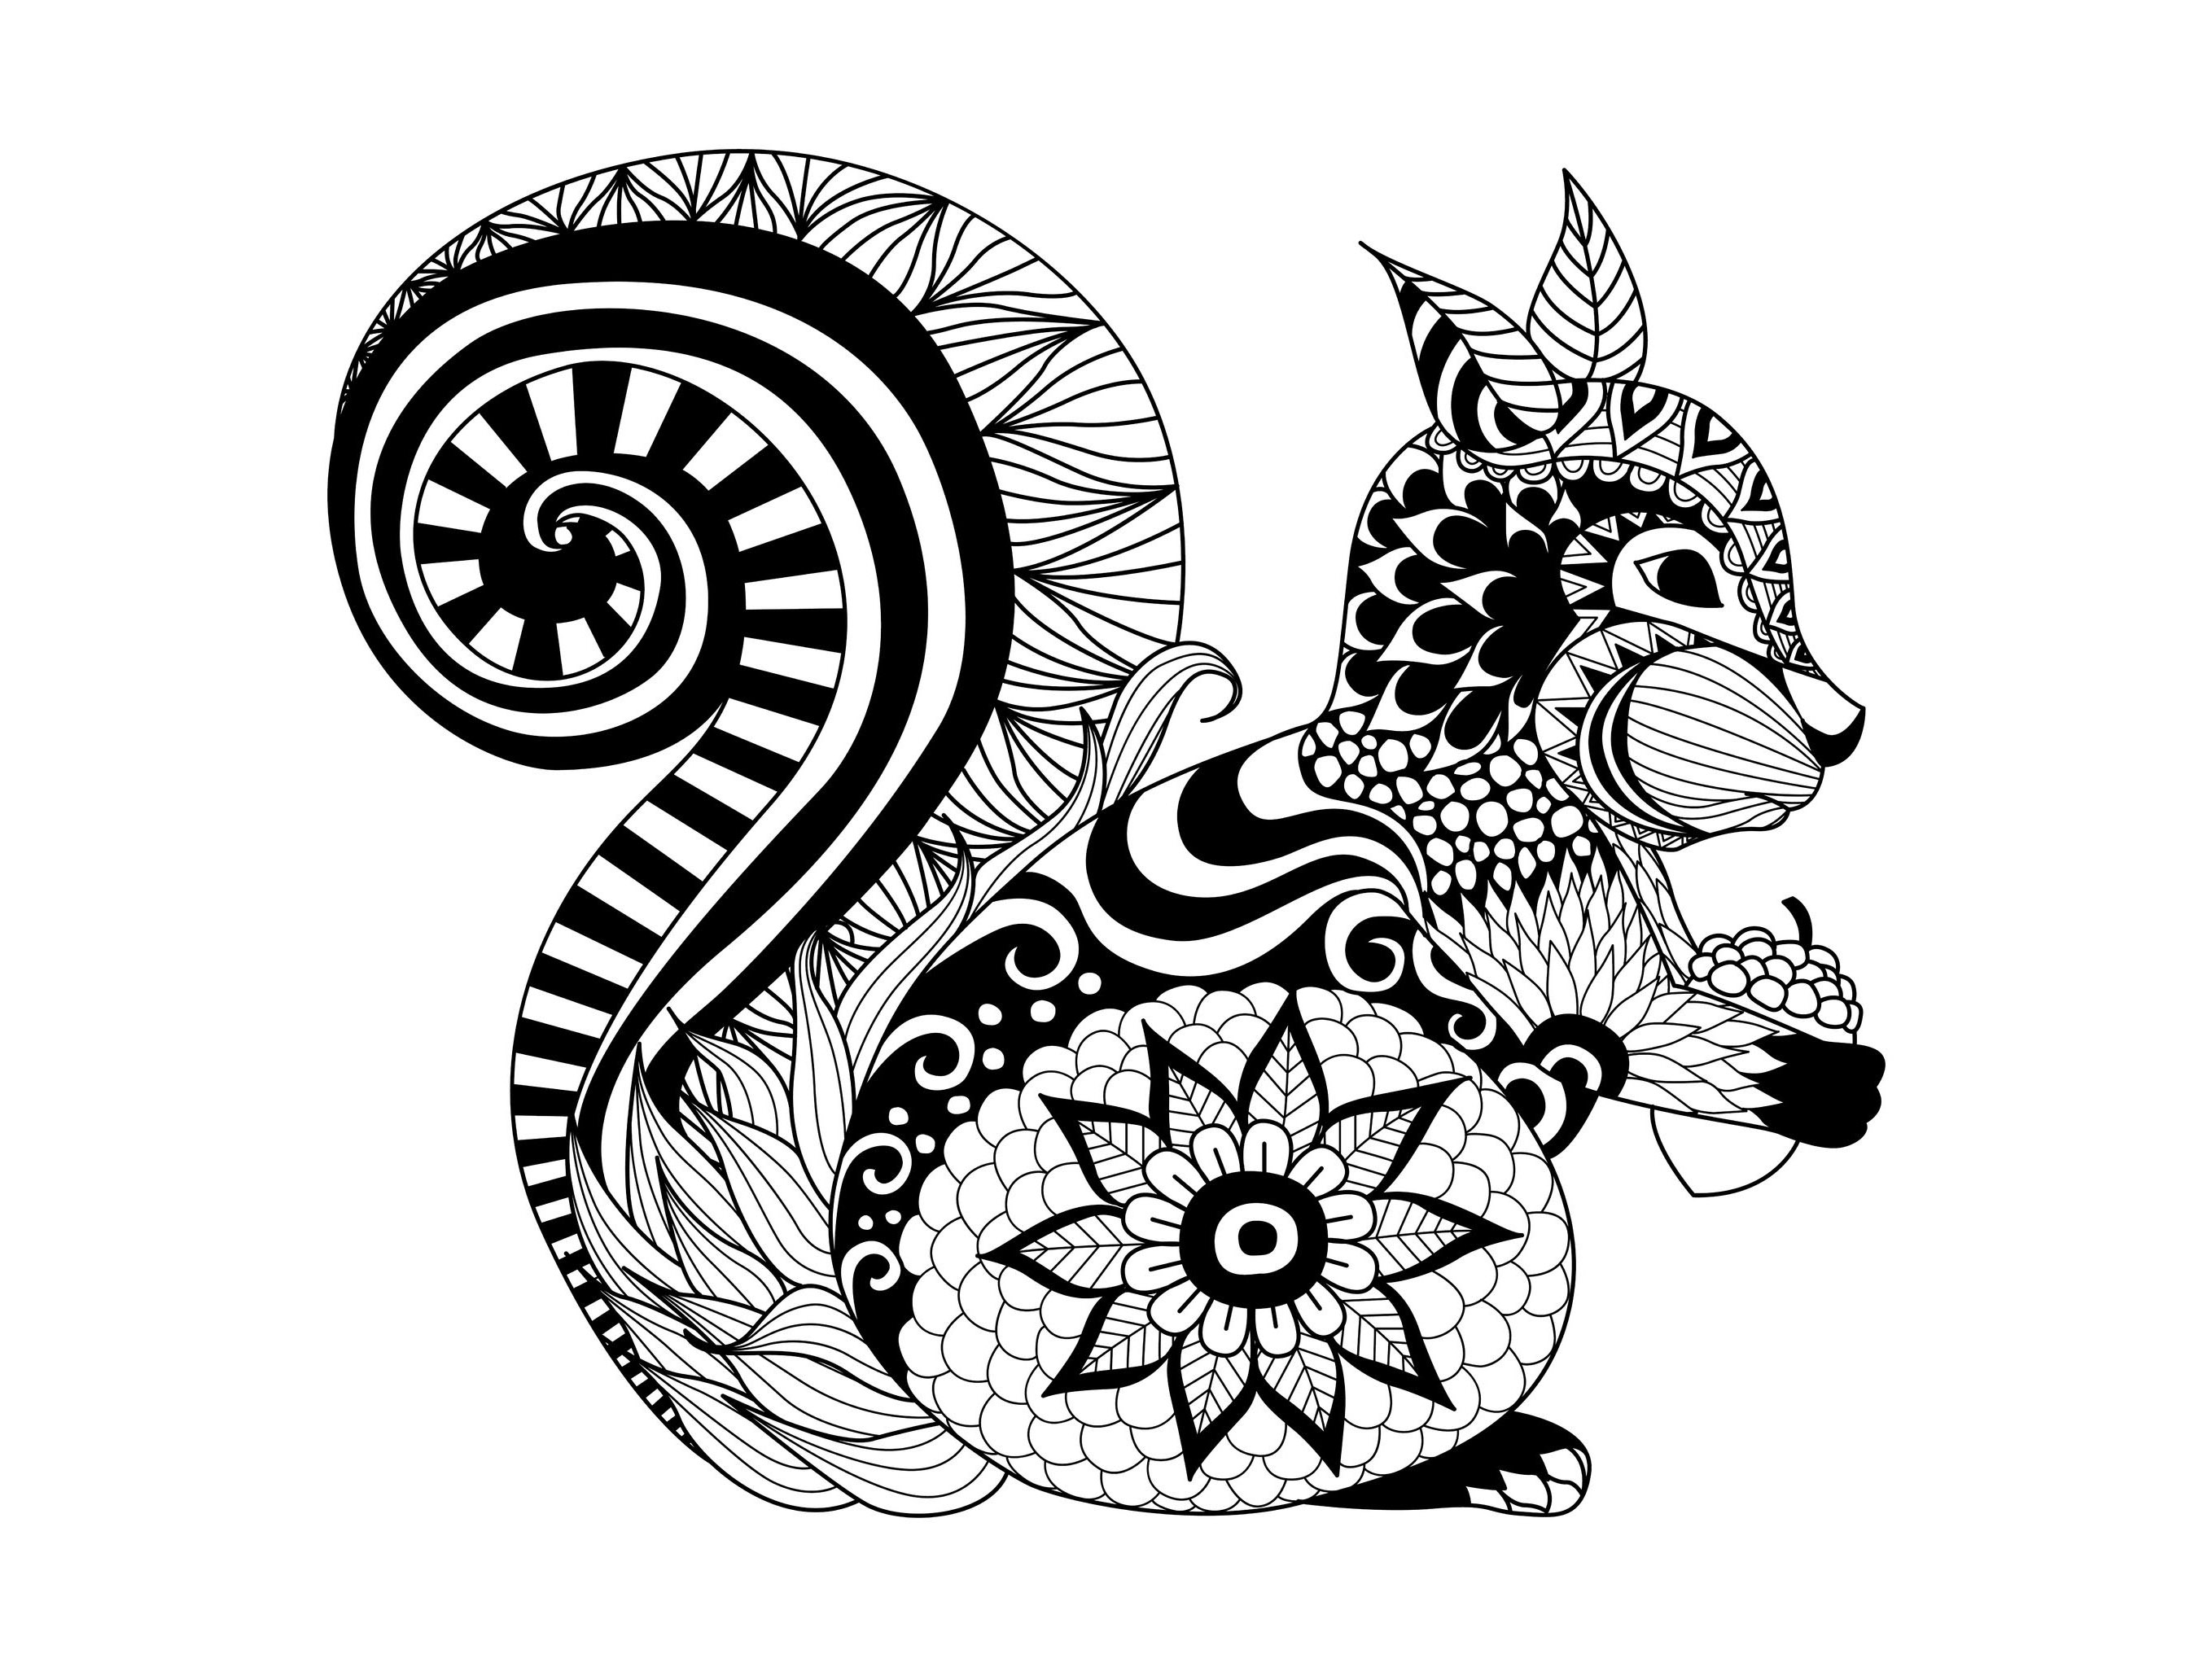 Coloring pages for adults zentangle - Zentangle Squirrel From The Gallery Zentangle Artist Bimdeedee Source 123rf